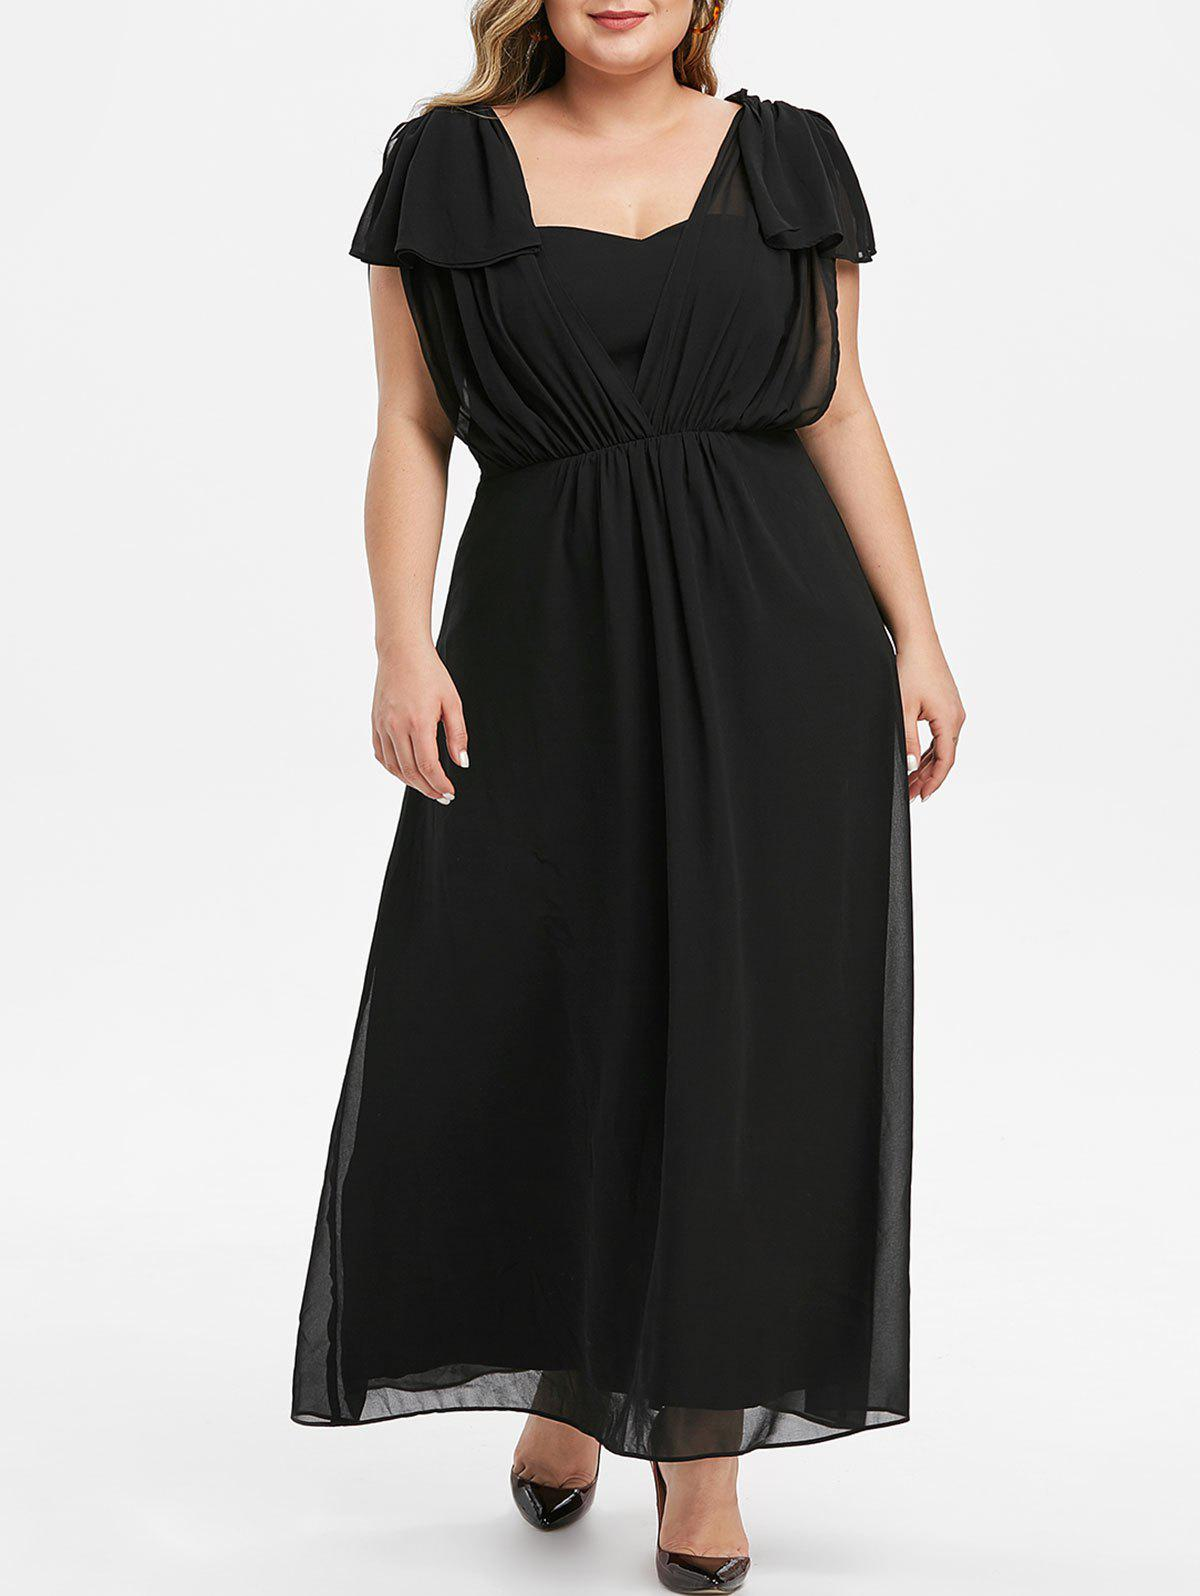 Plus Size High Waist Maxi Party Dress - BLACK 1X